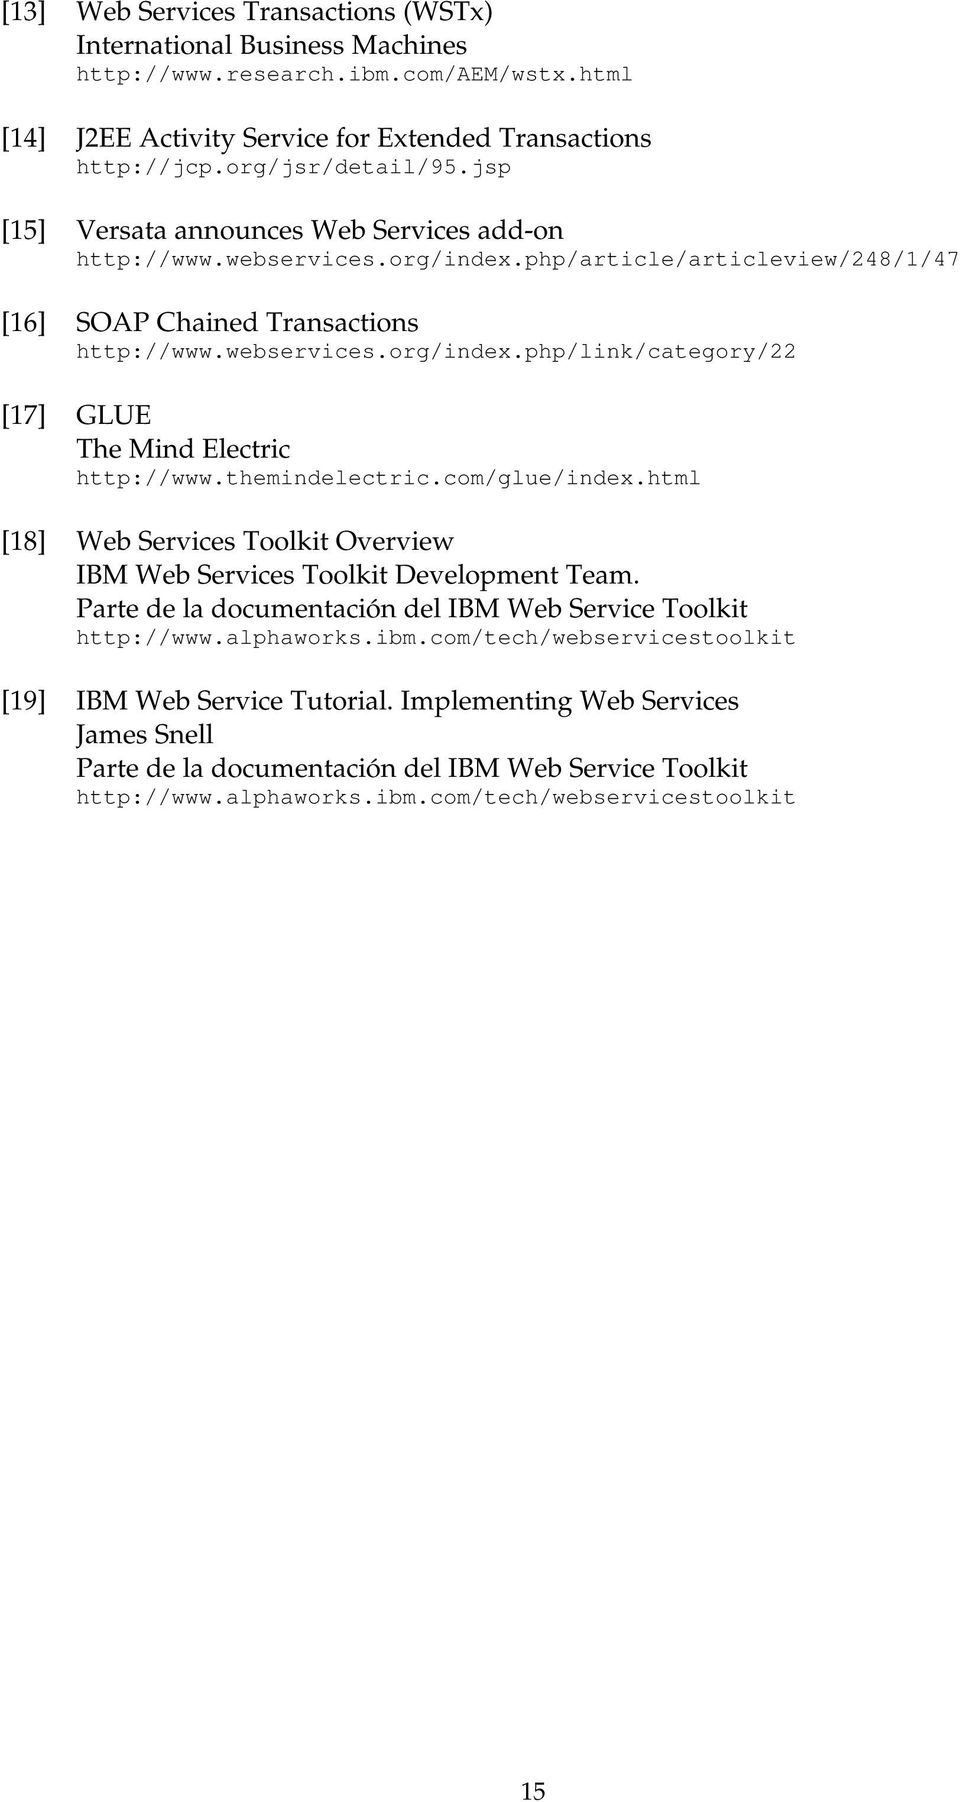 themindelectric.com/glue/index.html [18] Web Services Toolkit Overview IBM Web Services Toolkit Development Team. Parte de la documentación del IBM Web Service Toolkit http://www.alphaworks.ibm.